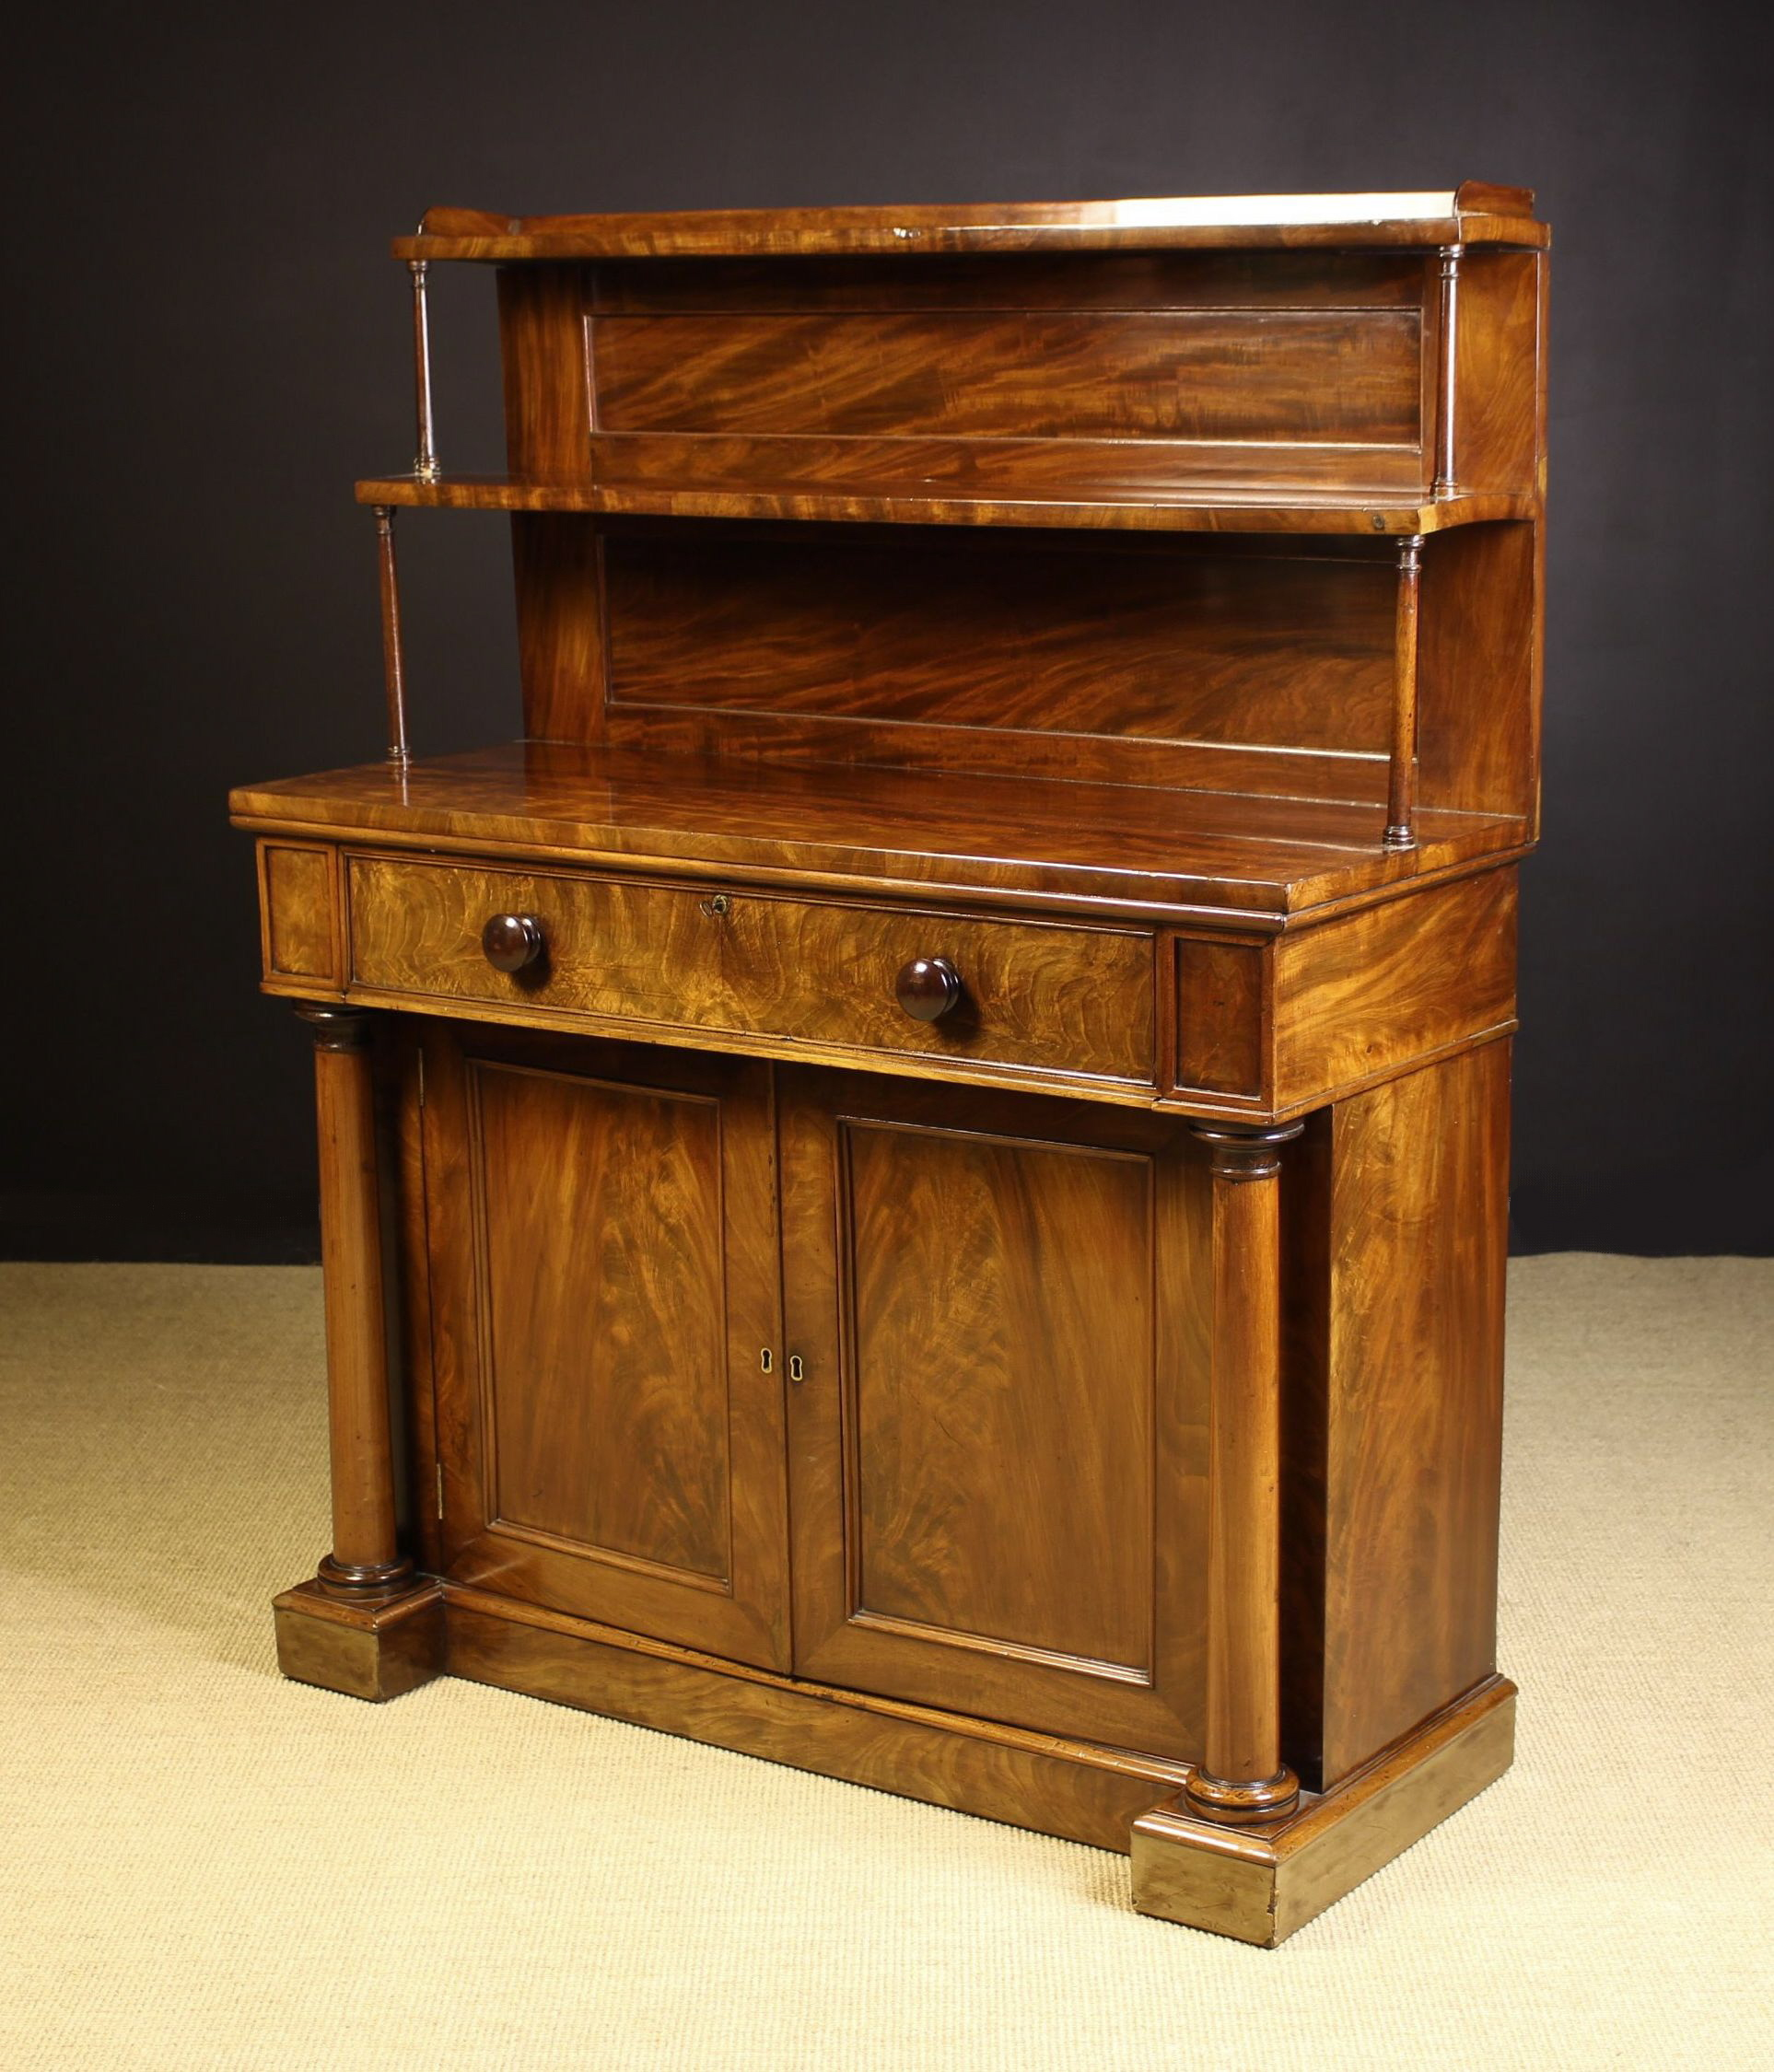 A Fine Mid 19th Century Flame Mahogany Chiffonier with Secrètaire.